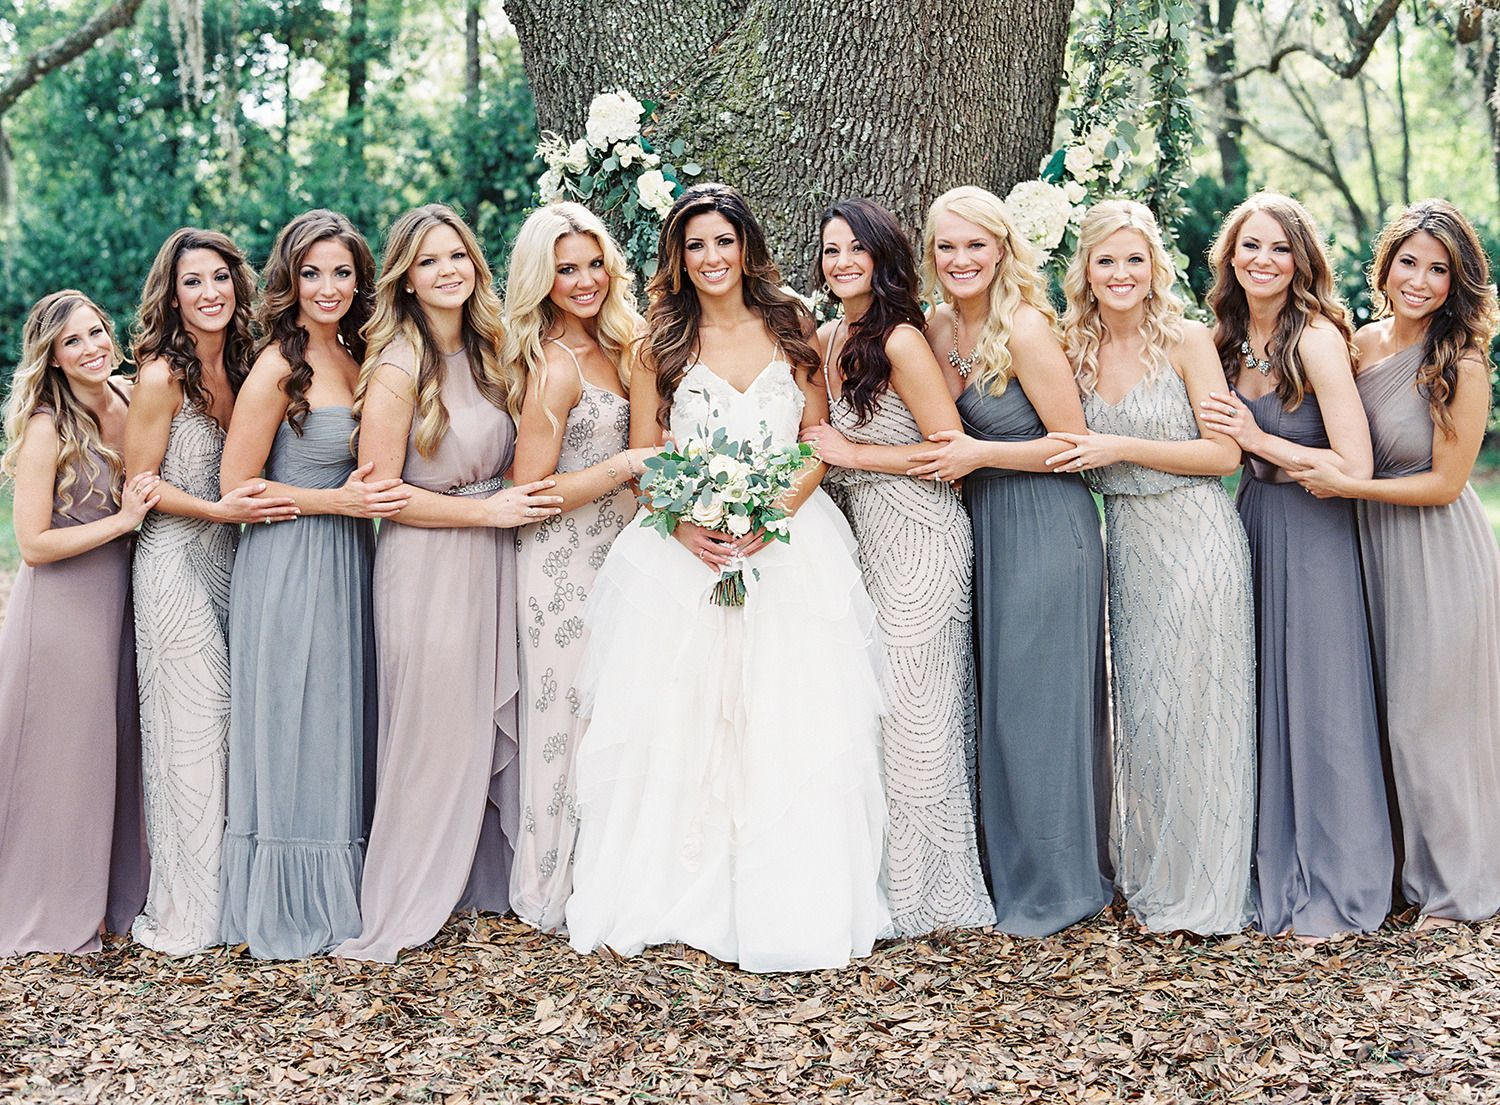 Rustic elegant jacksonville wedding hayley paige celebrations rustic elegant jacksonville wedding grey blue bridesmaid dressesgrey ombrellifo Images